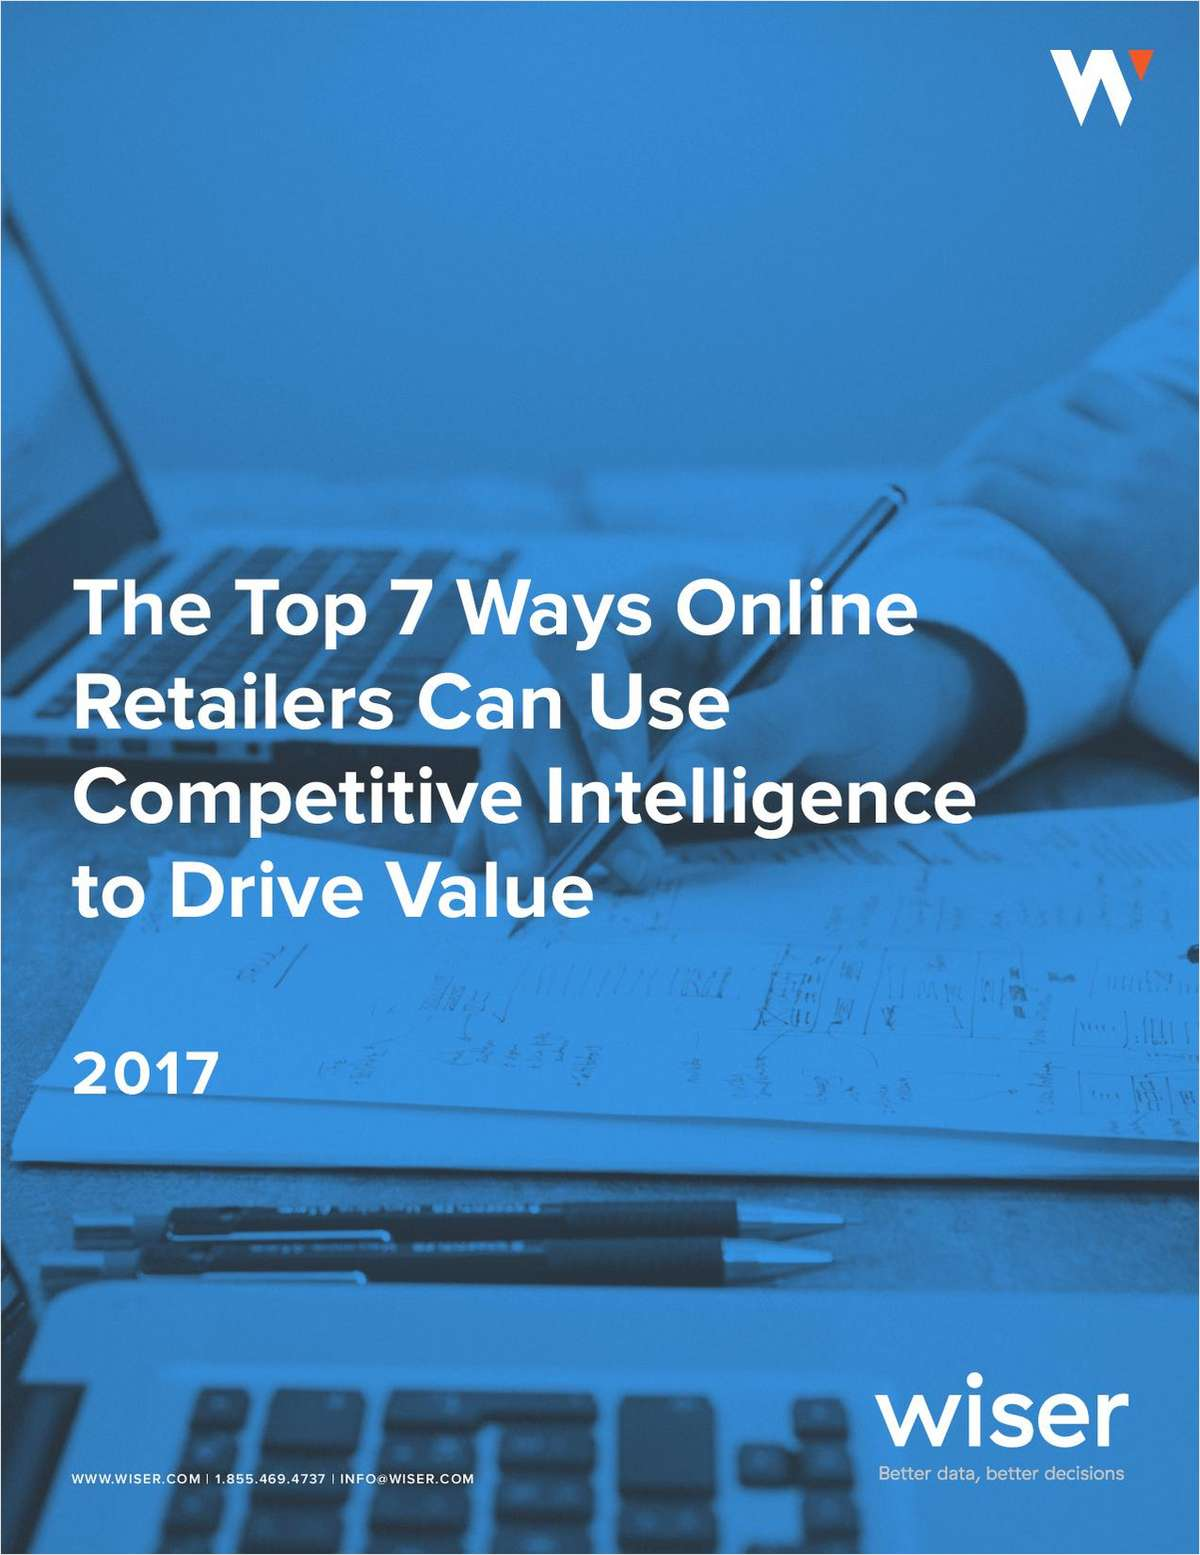 The Top 7 Ways Online Retailers Can Use Competitive Intelligence